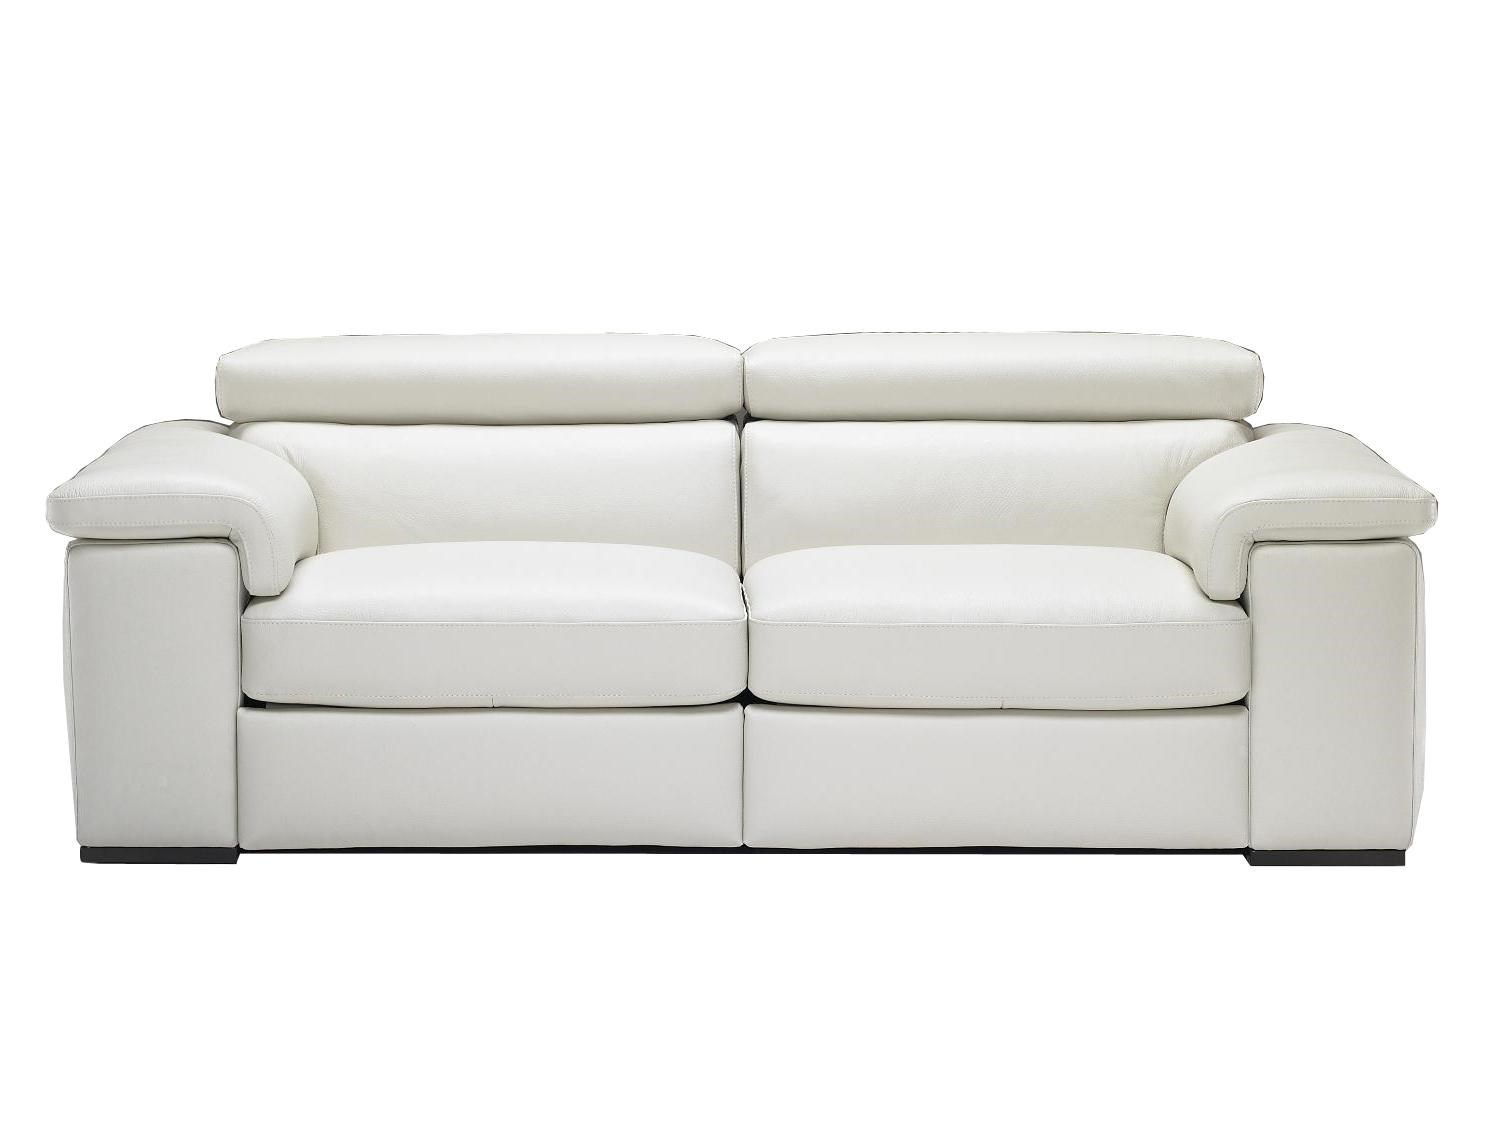 reclining leather sofas sofa electric recliner natuzzi editions b620 446 contemporary power b620power